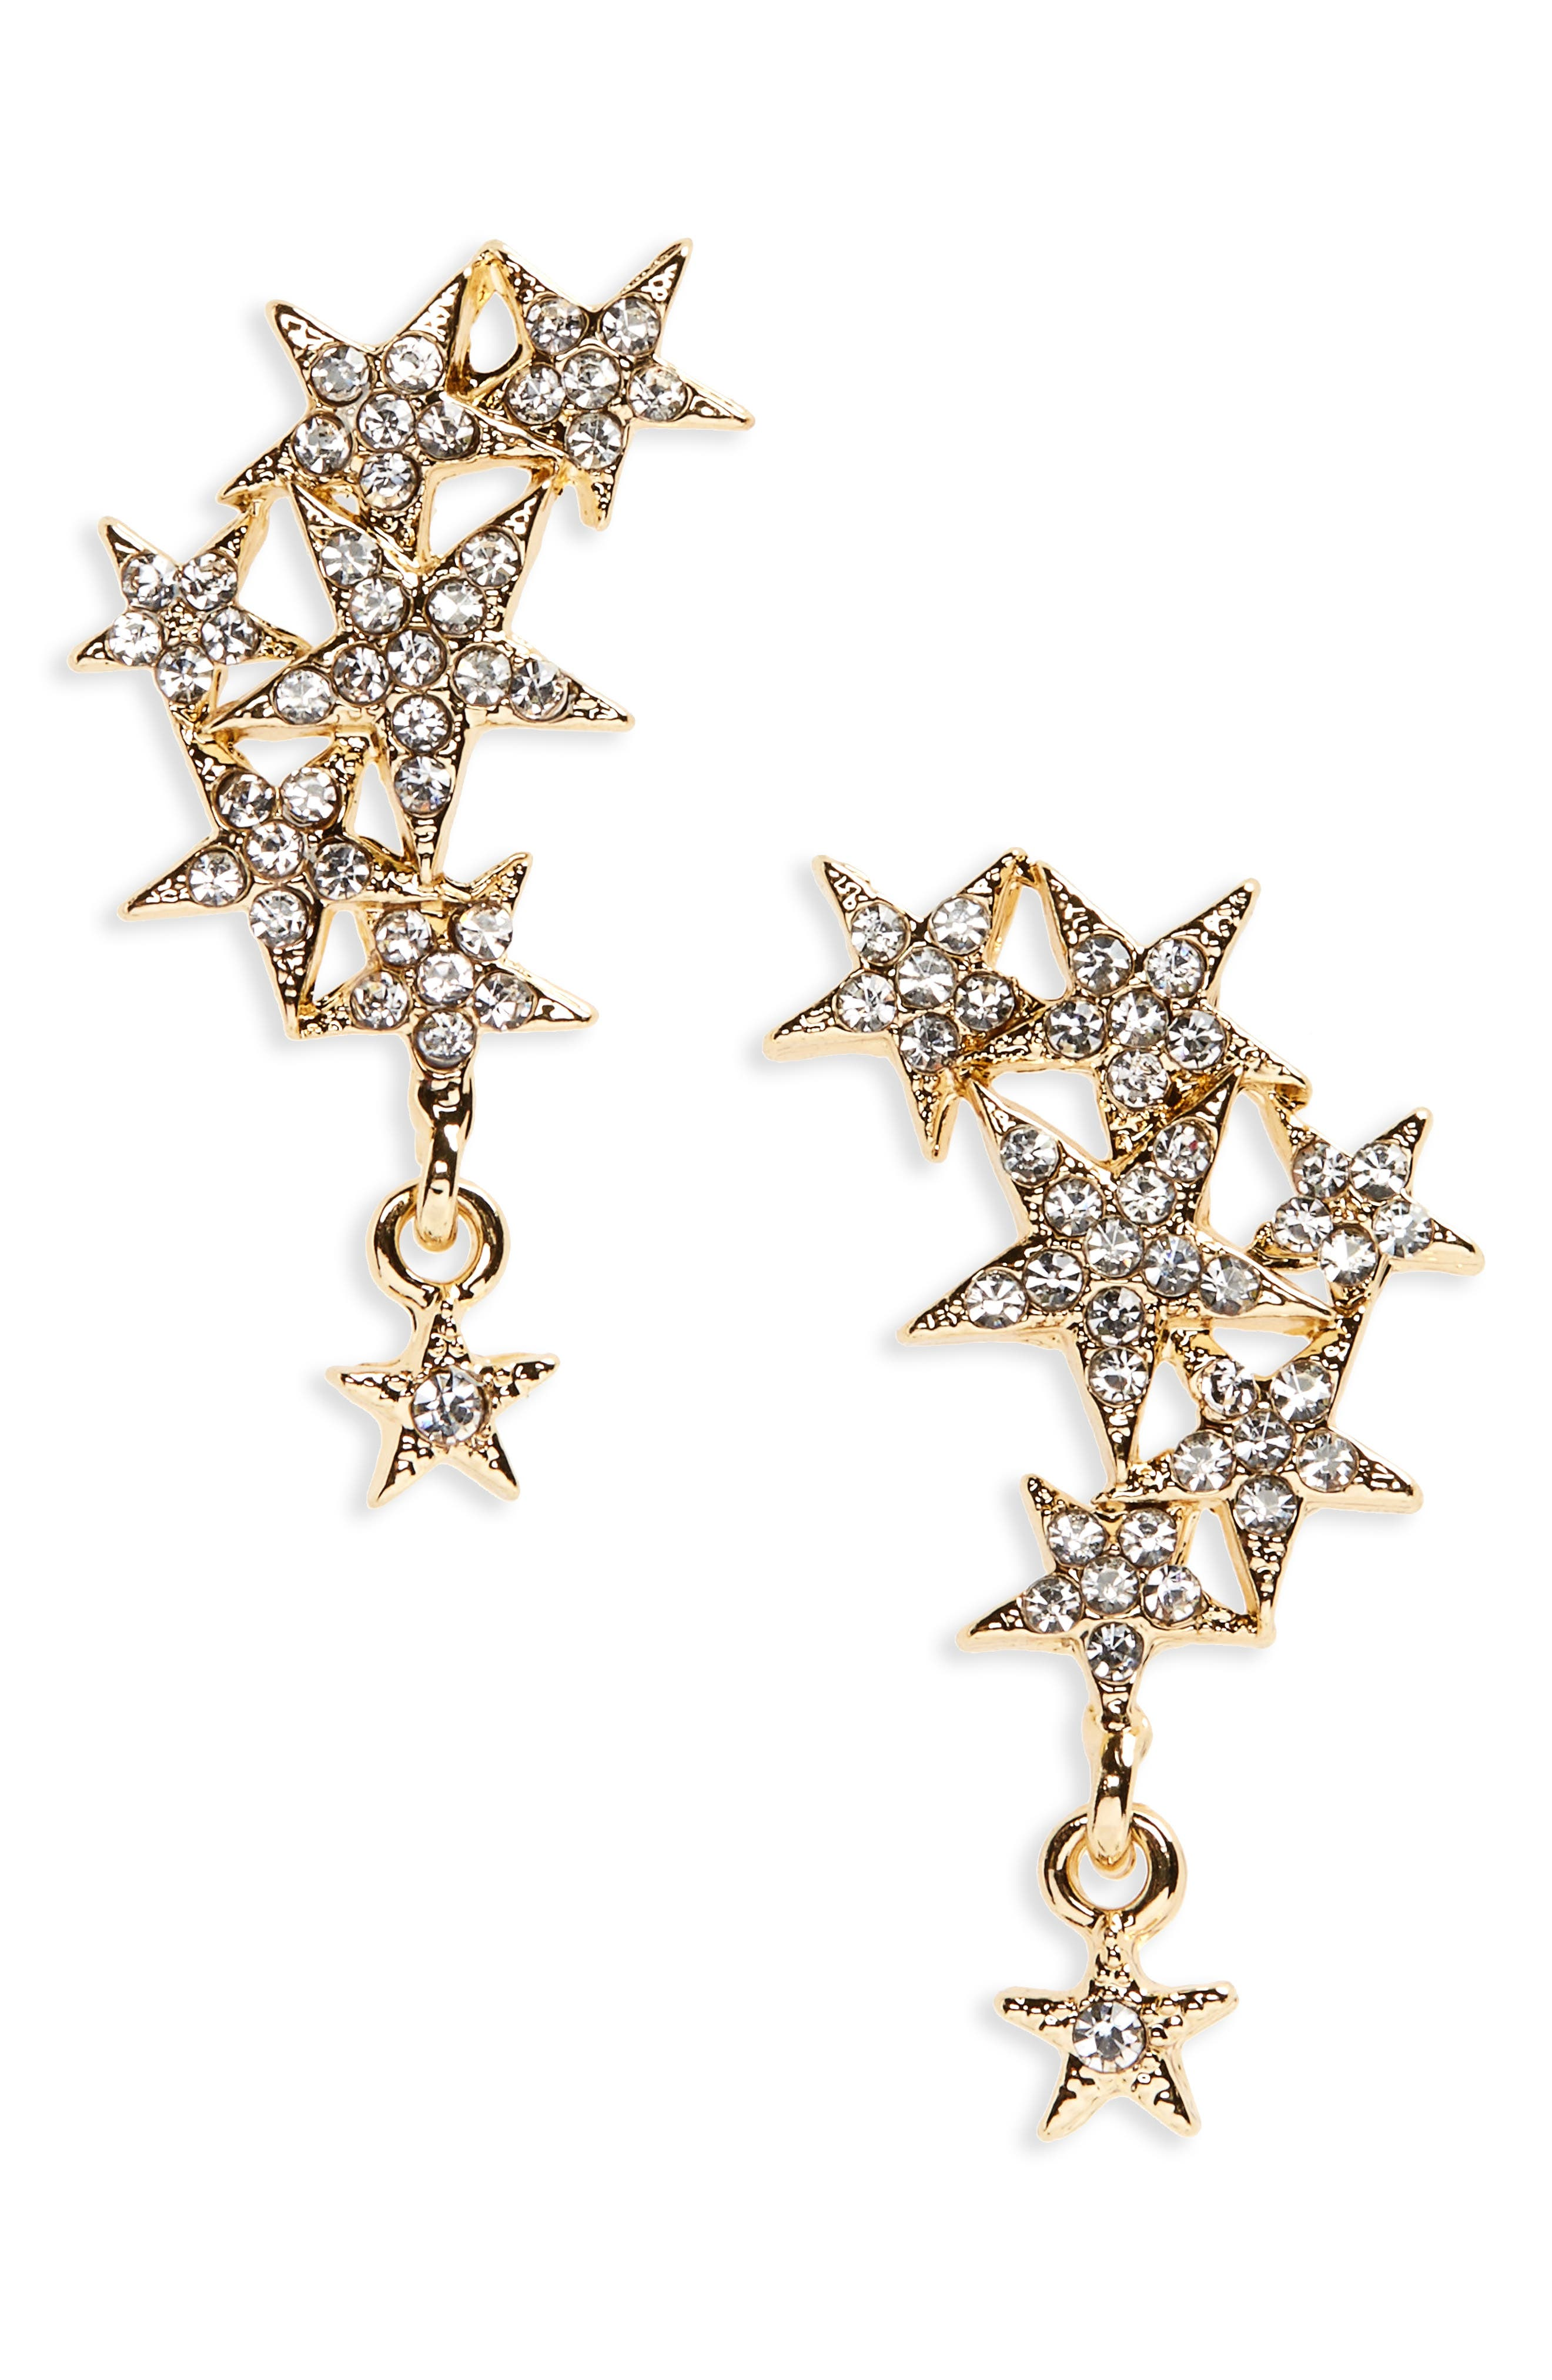 Crystal Star Cluster Statement Earrings,                             Main thumbnail 1, color,                             Gold